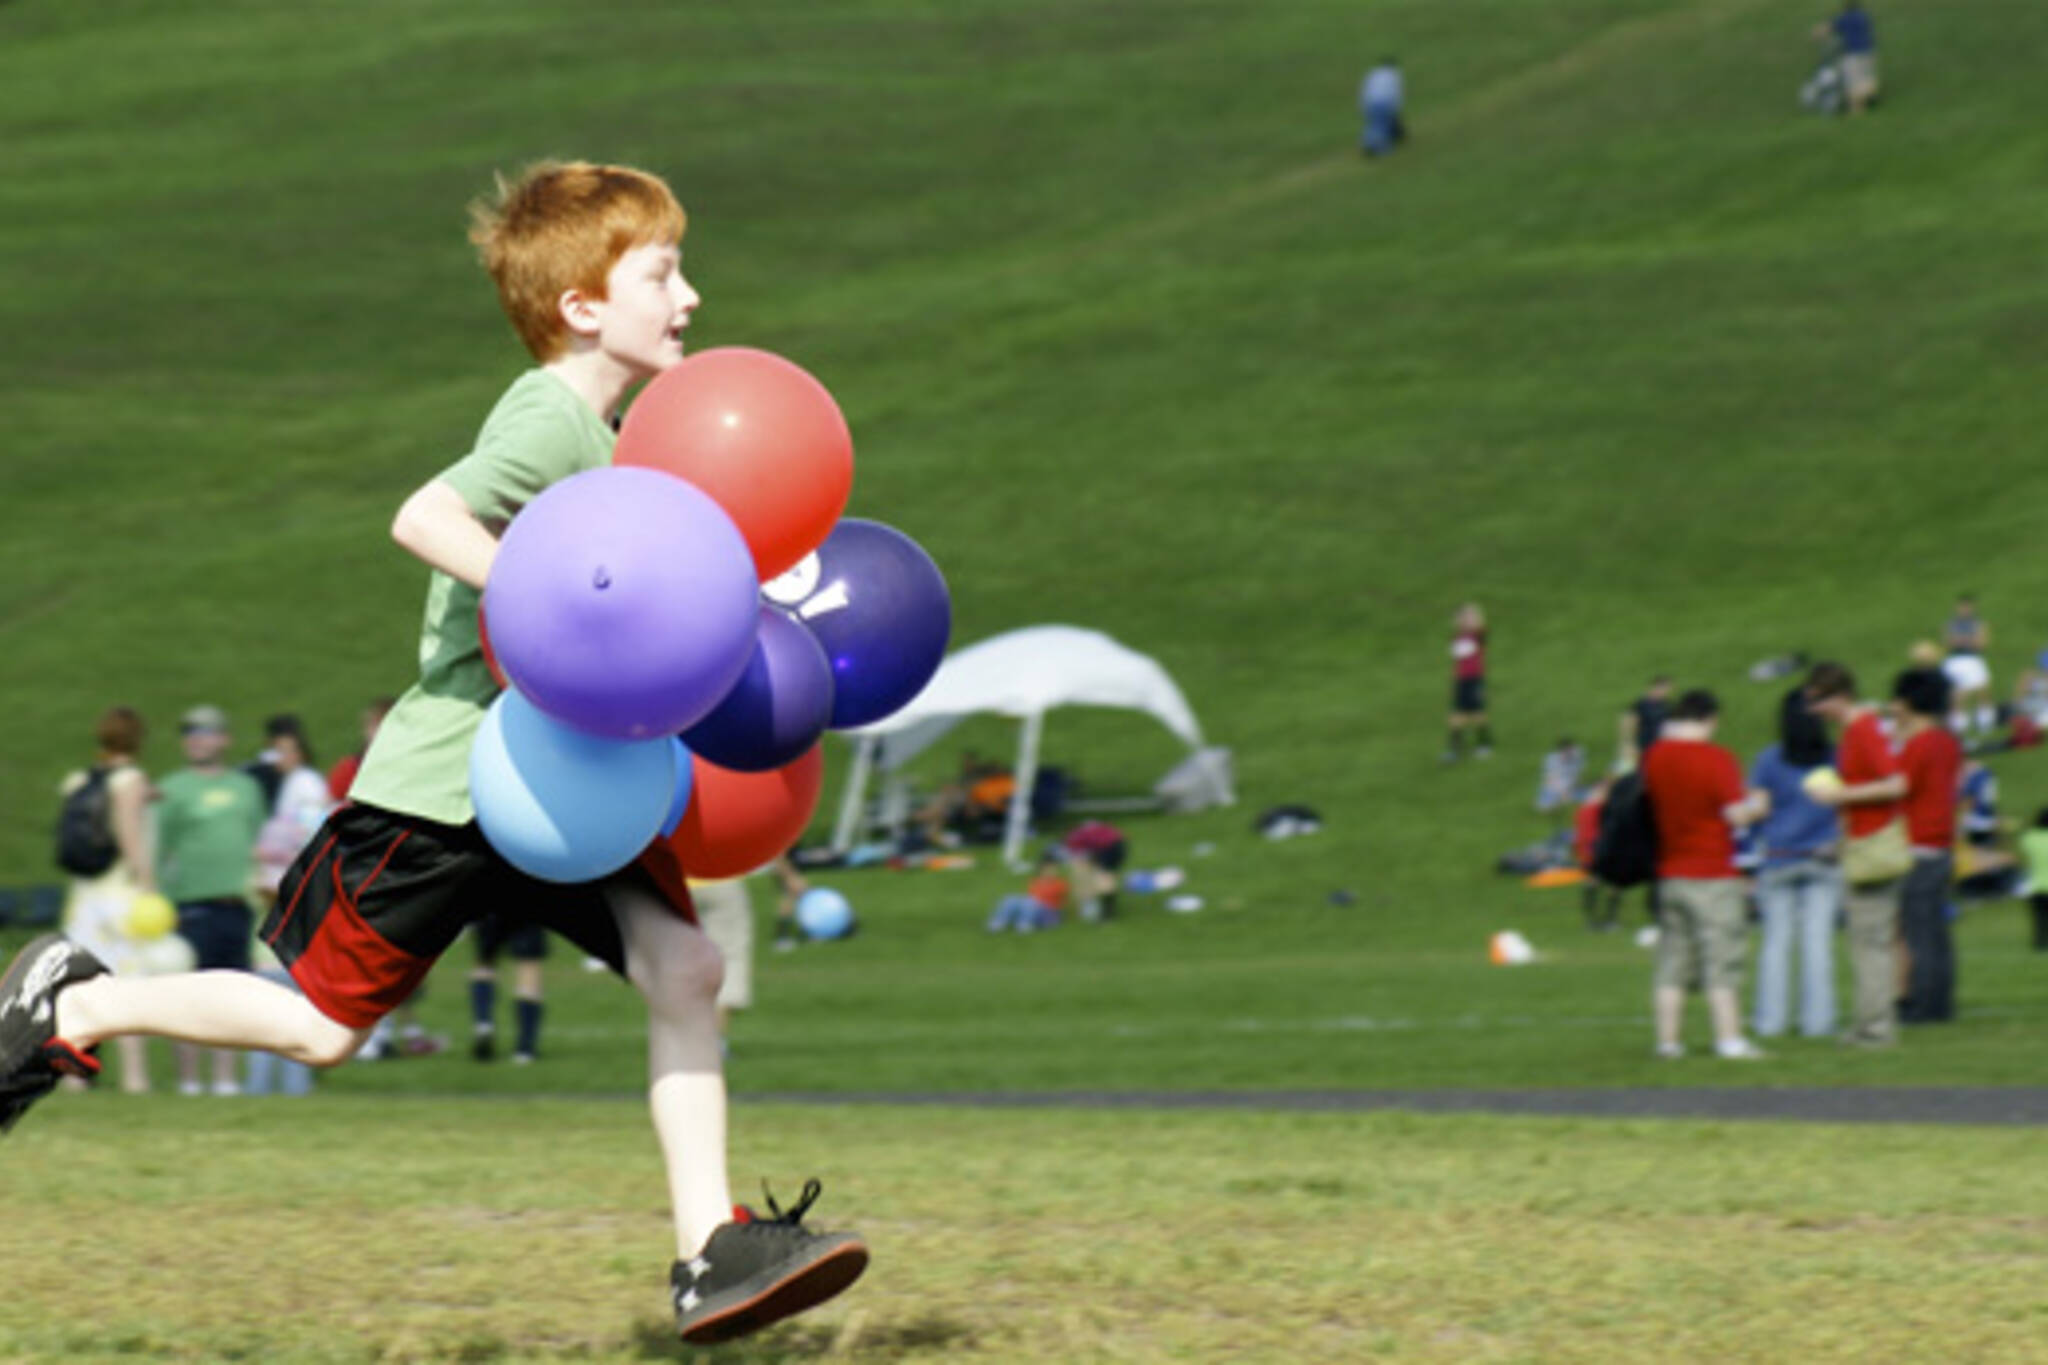 MP3 Experiment in Toronto aftermath leaves boy chasing balloon